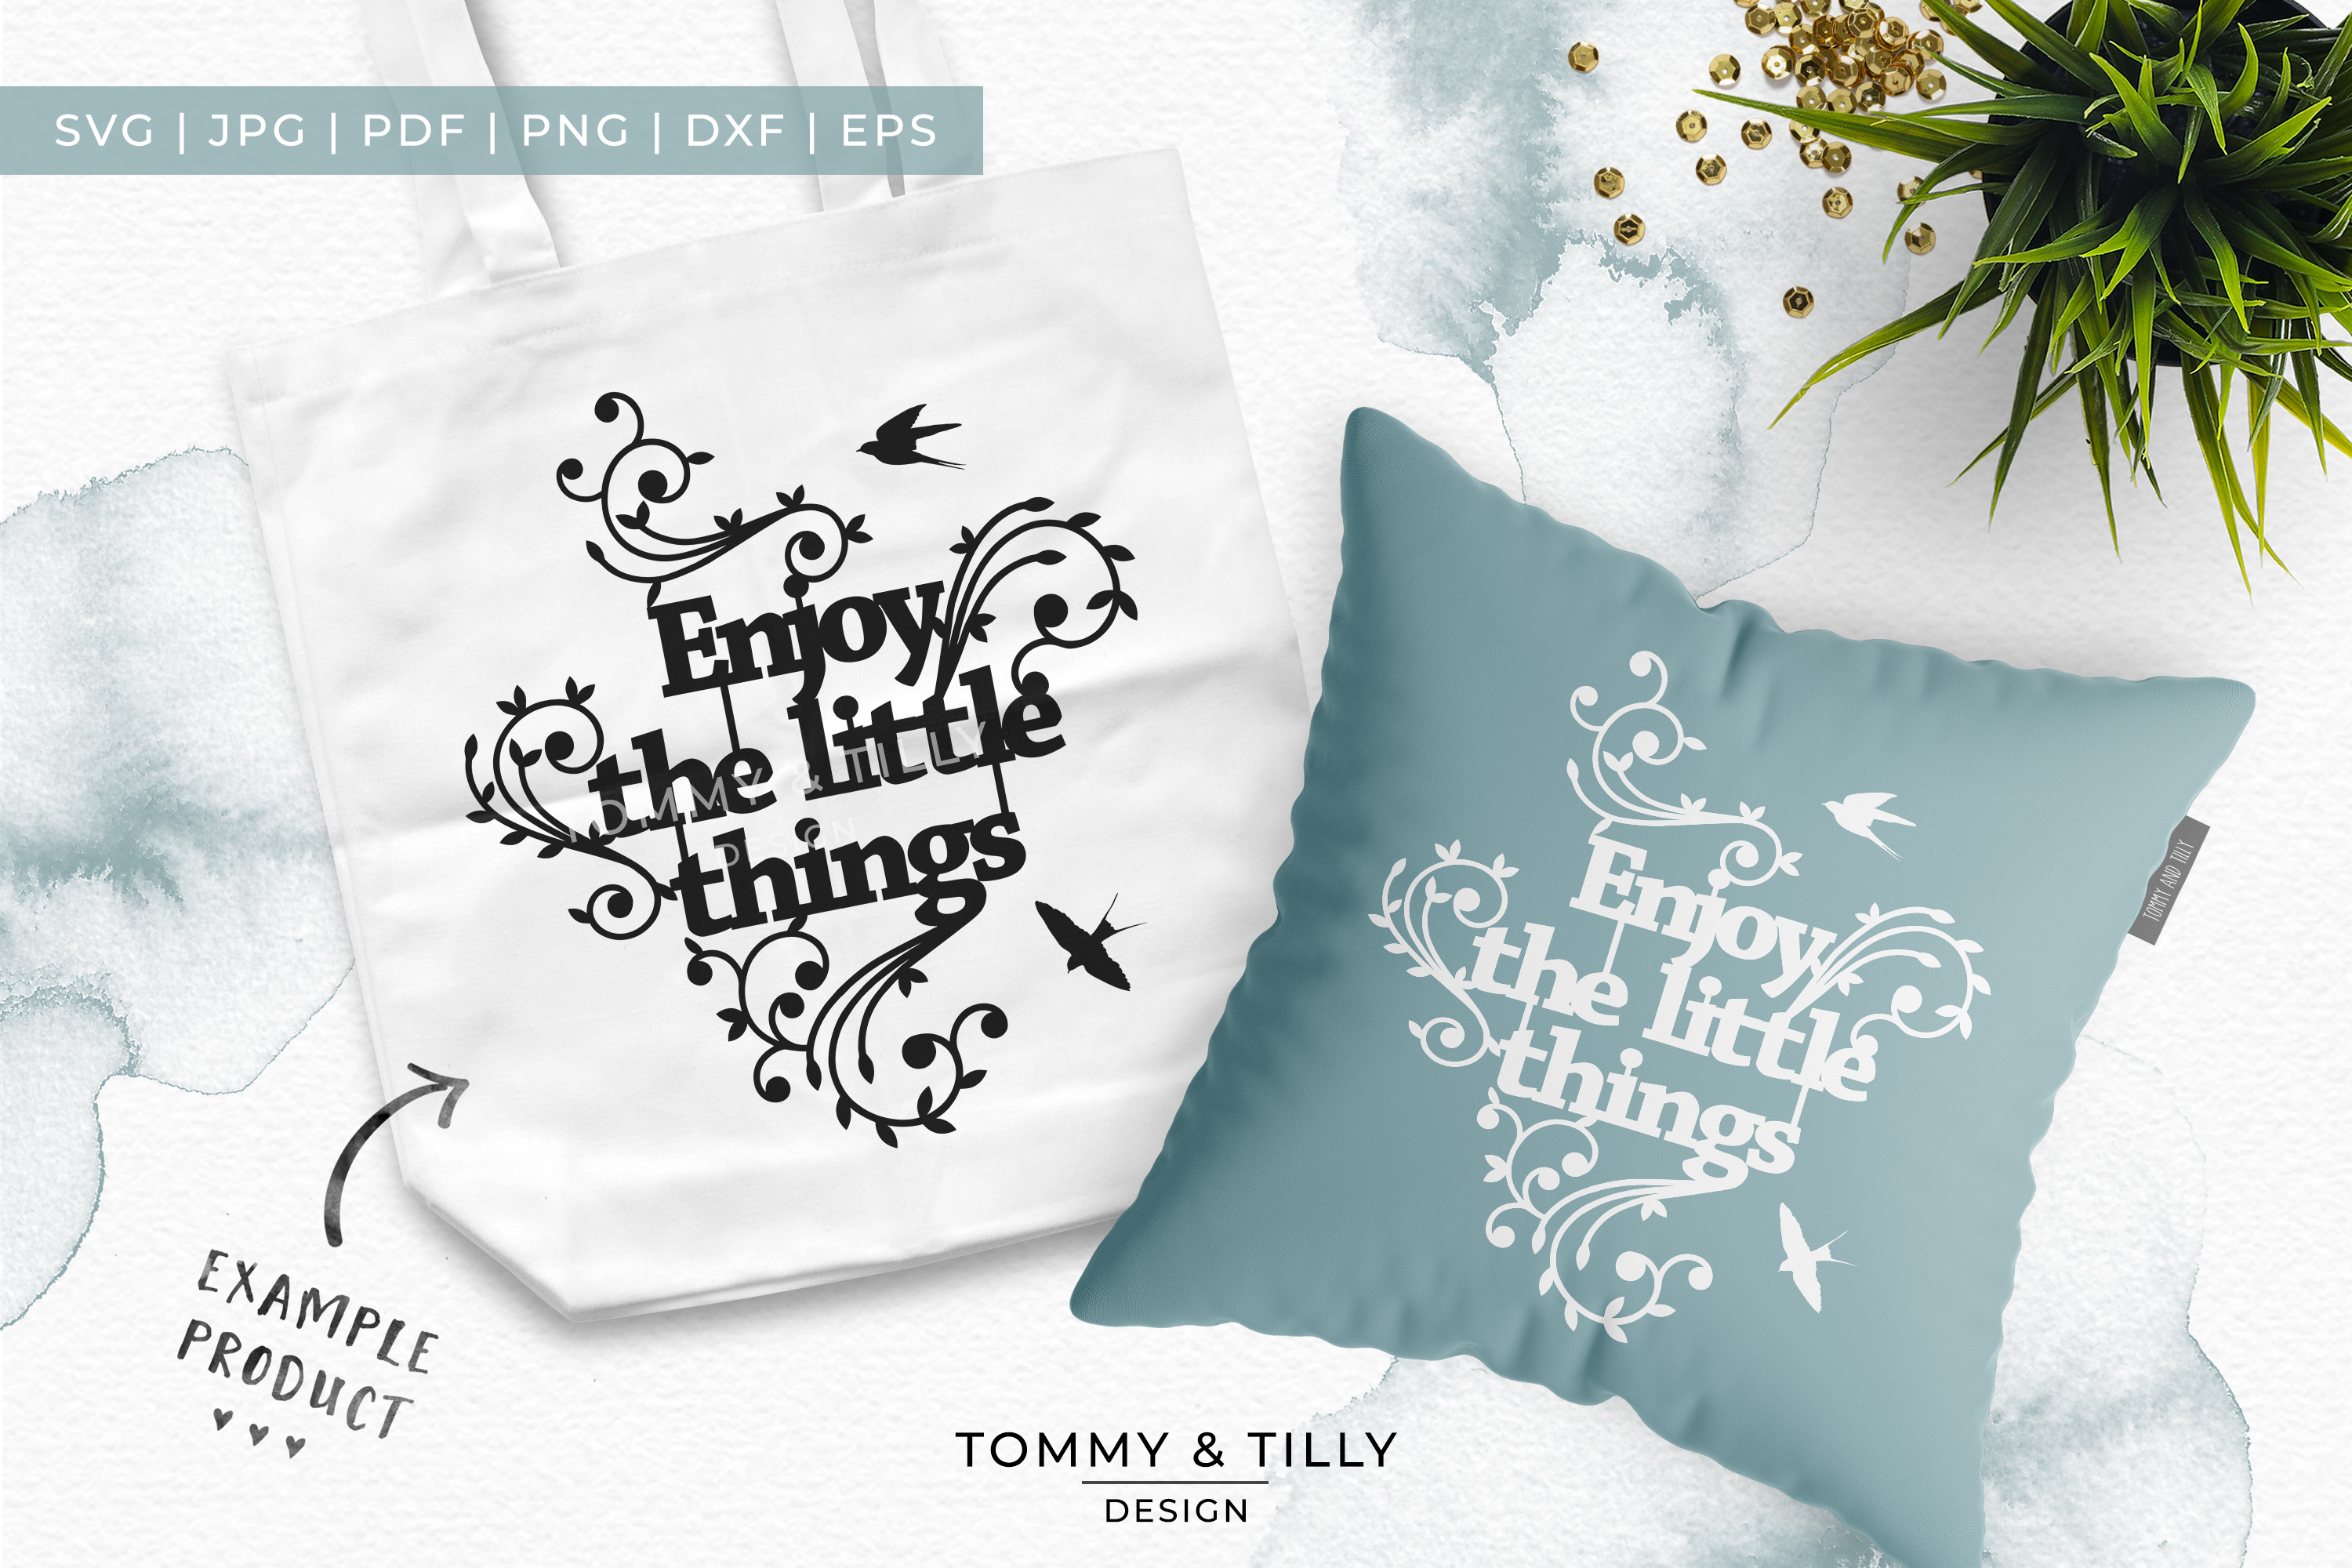 Enjoy the little things - Papercut SVG EPS DXF PNG PDF example image 2